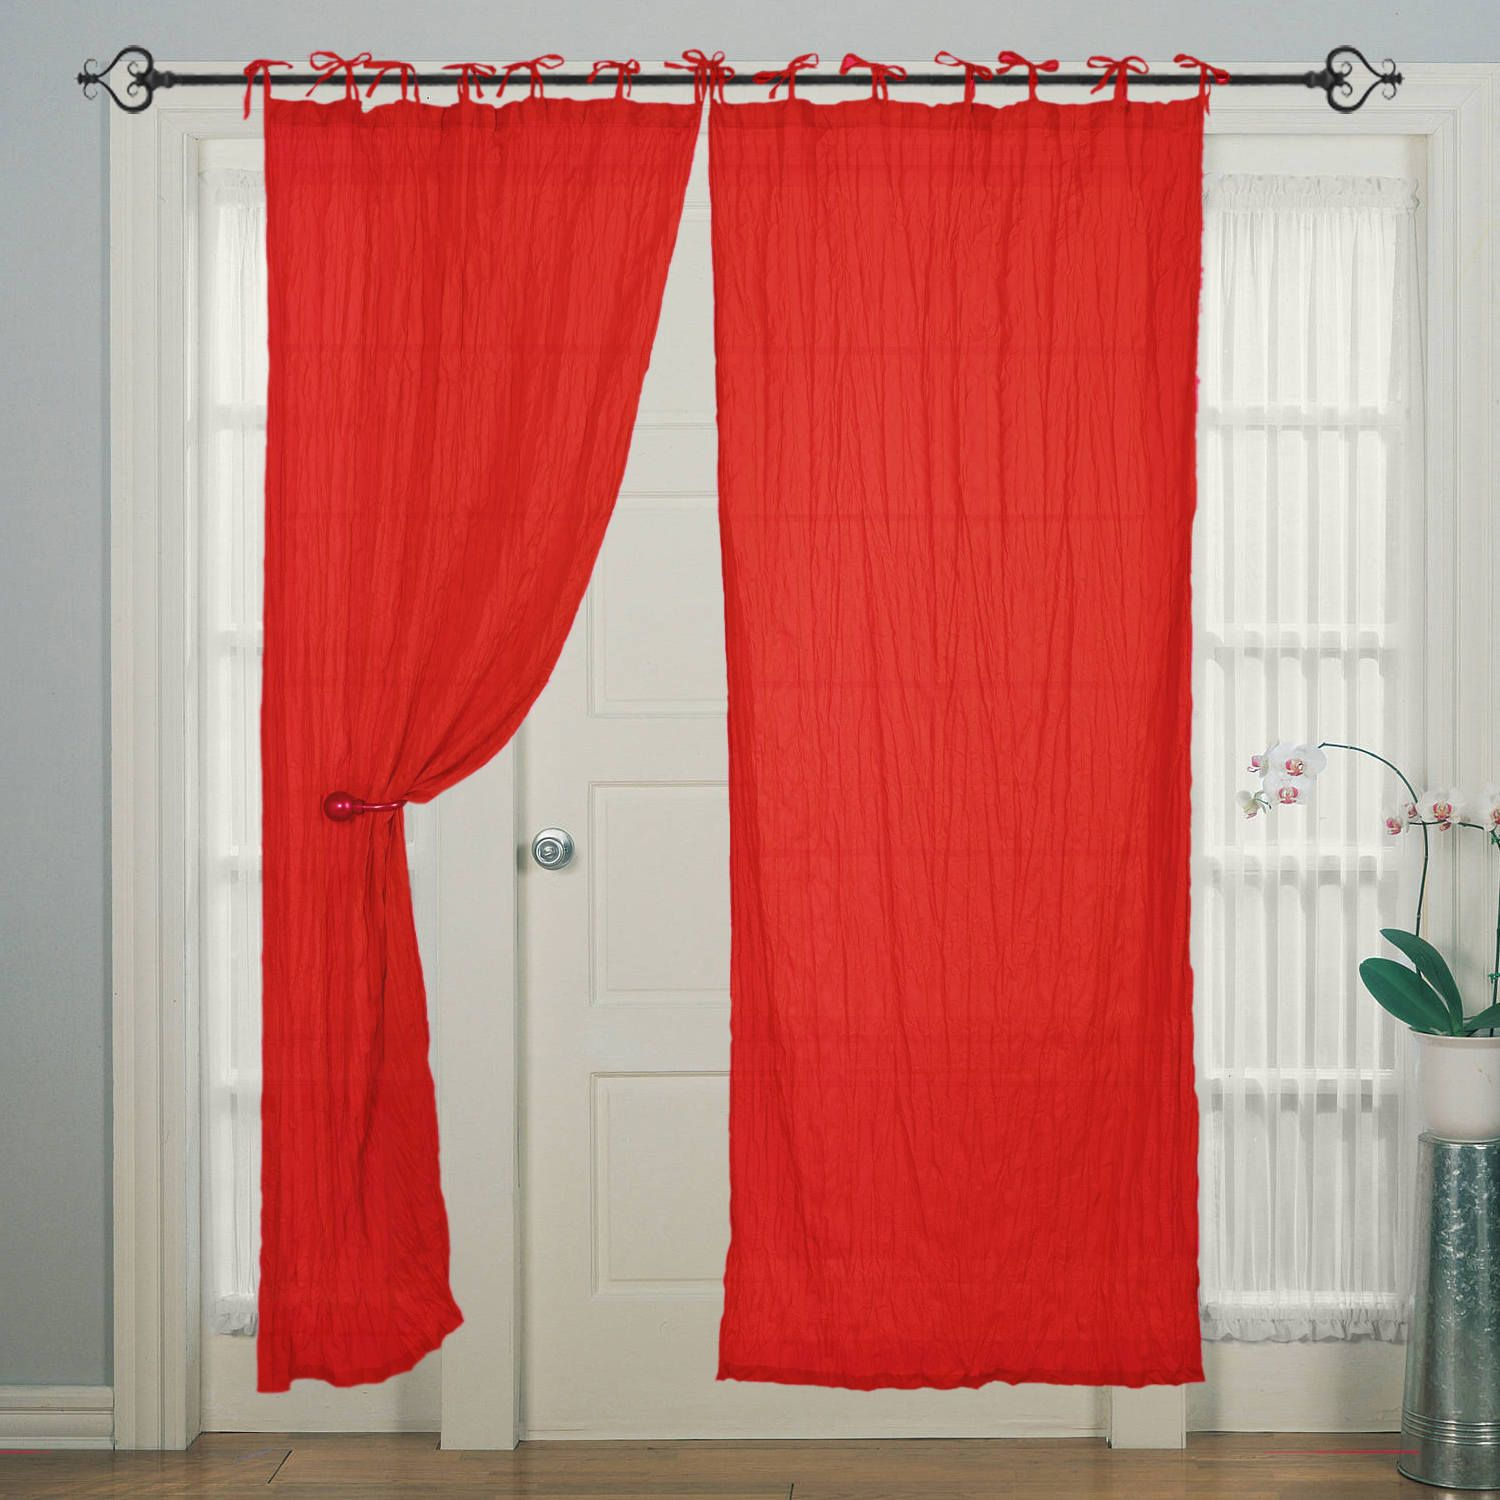 Tie Top Cotton Piping Red Window Door Curtain For Bedroom By